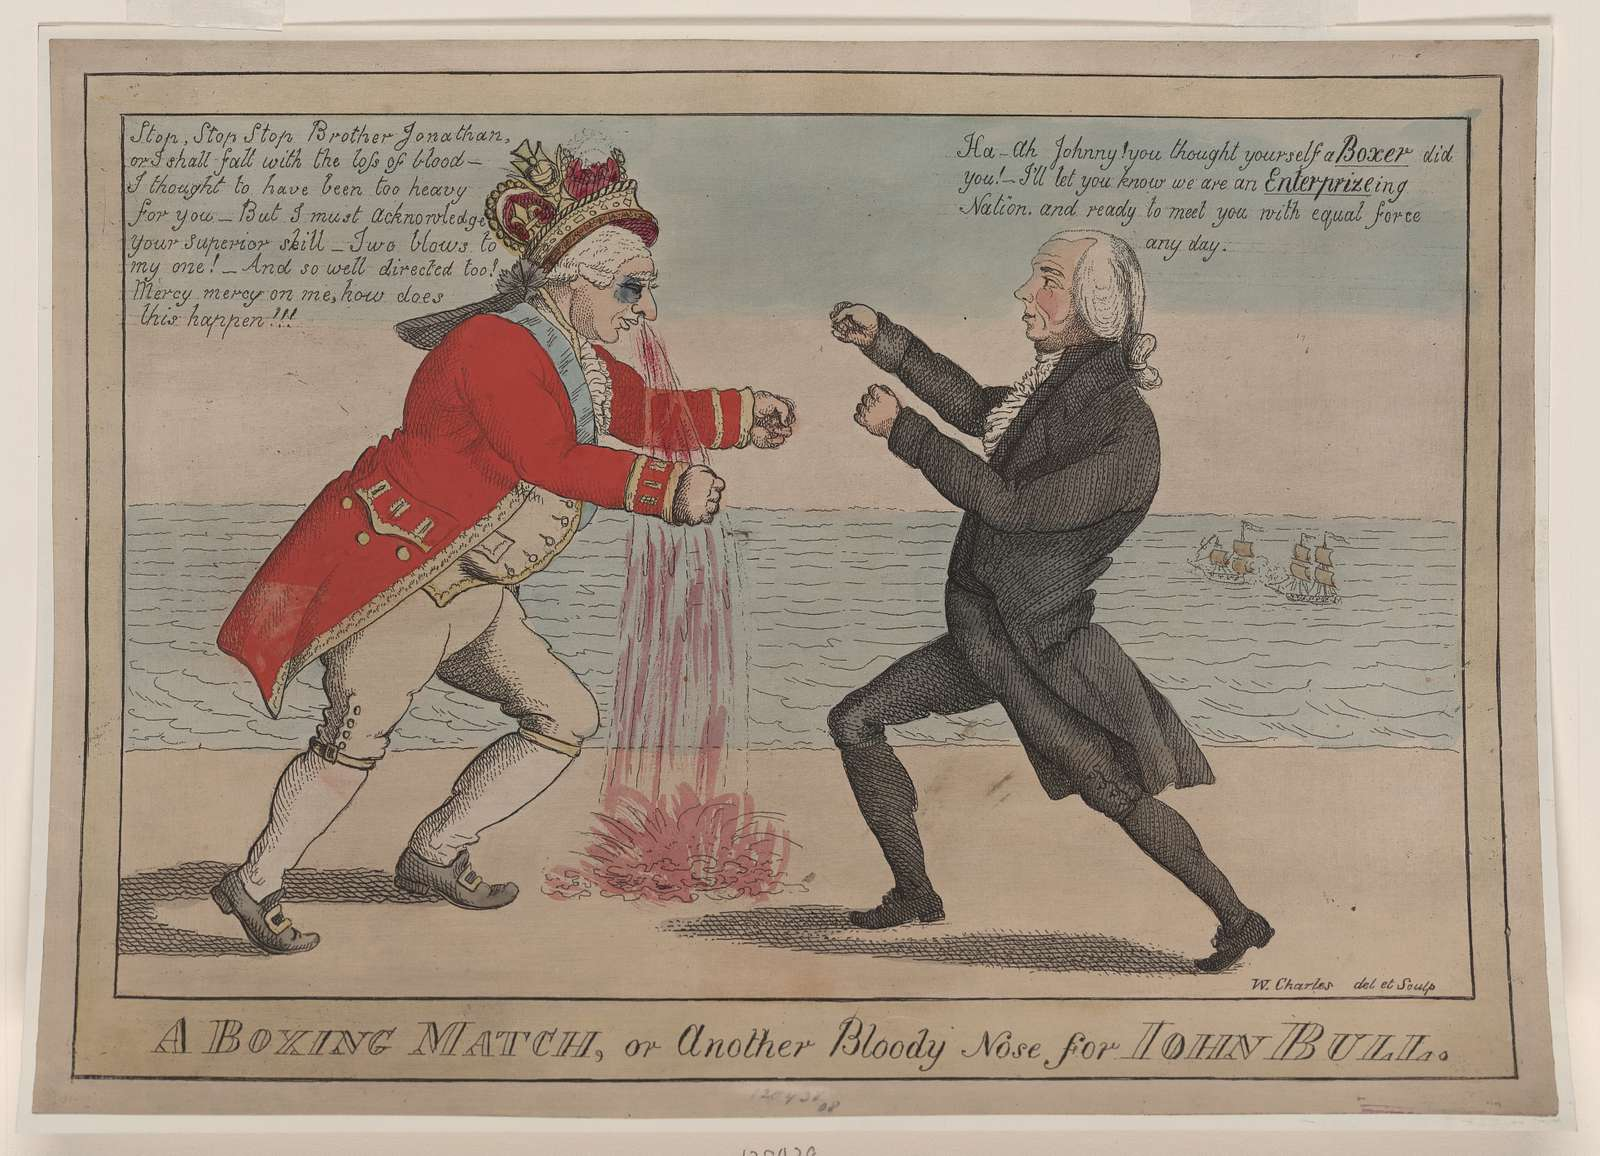 A boxing match, or another bloody nose for John Bull / W. Charles, del et sculp.